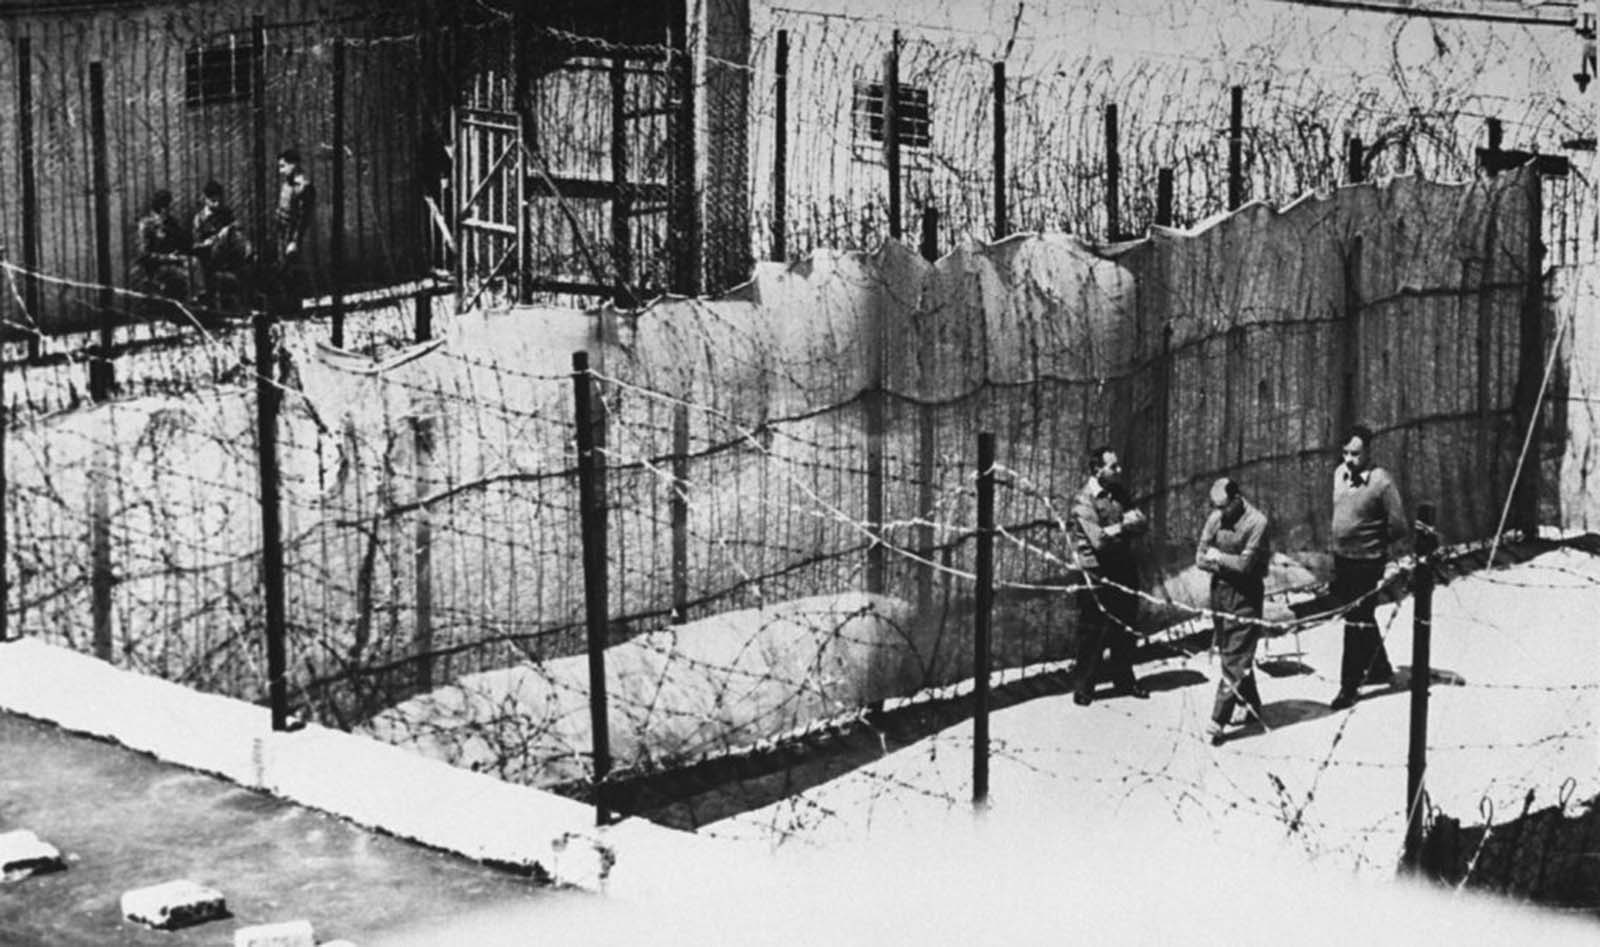 Barbed wire his victims once knew confined Eichmann's walks.